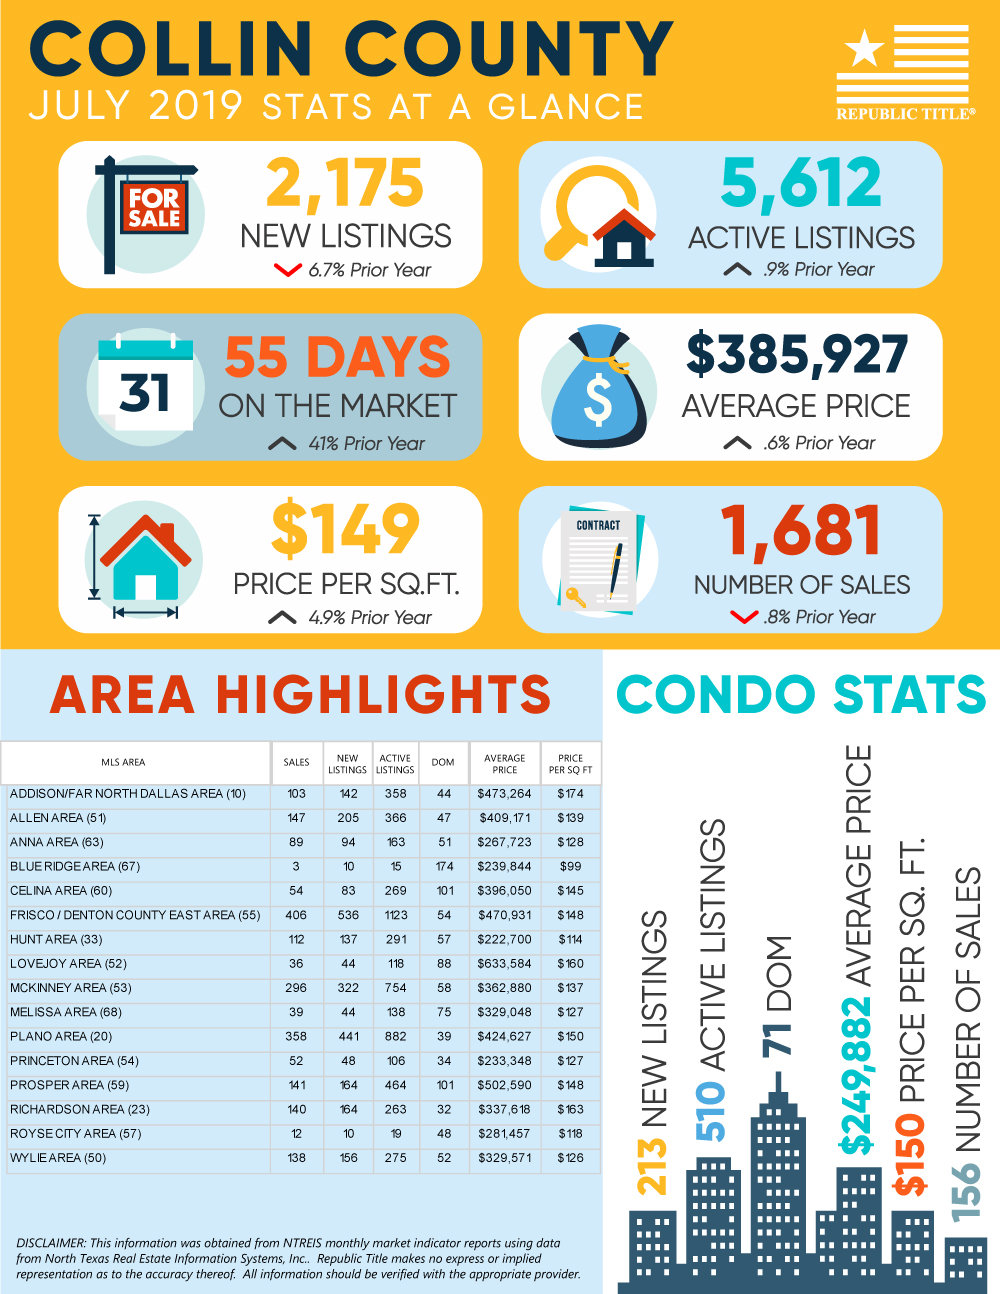 Collin County, TX Housing Market Update - July 2019 Home & Condo Stats